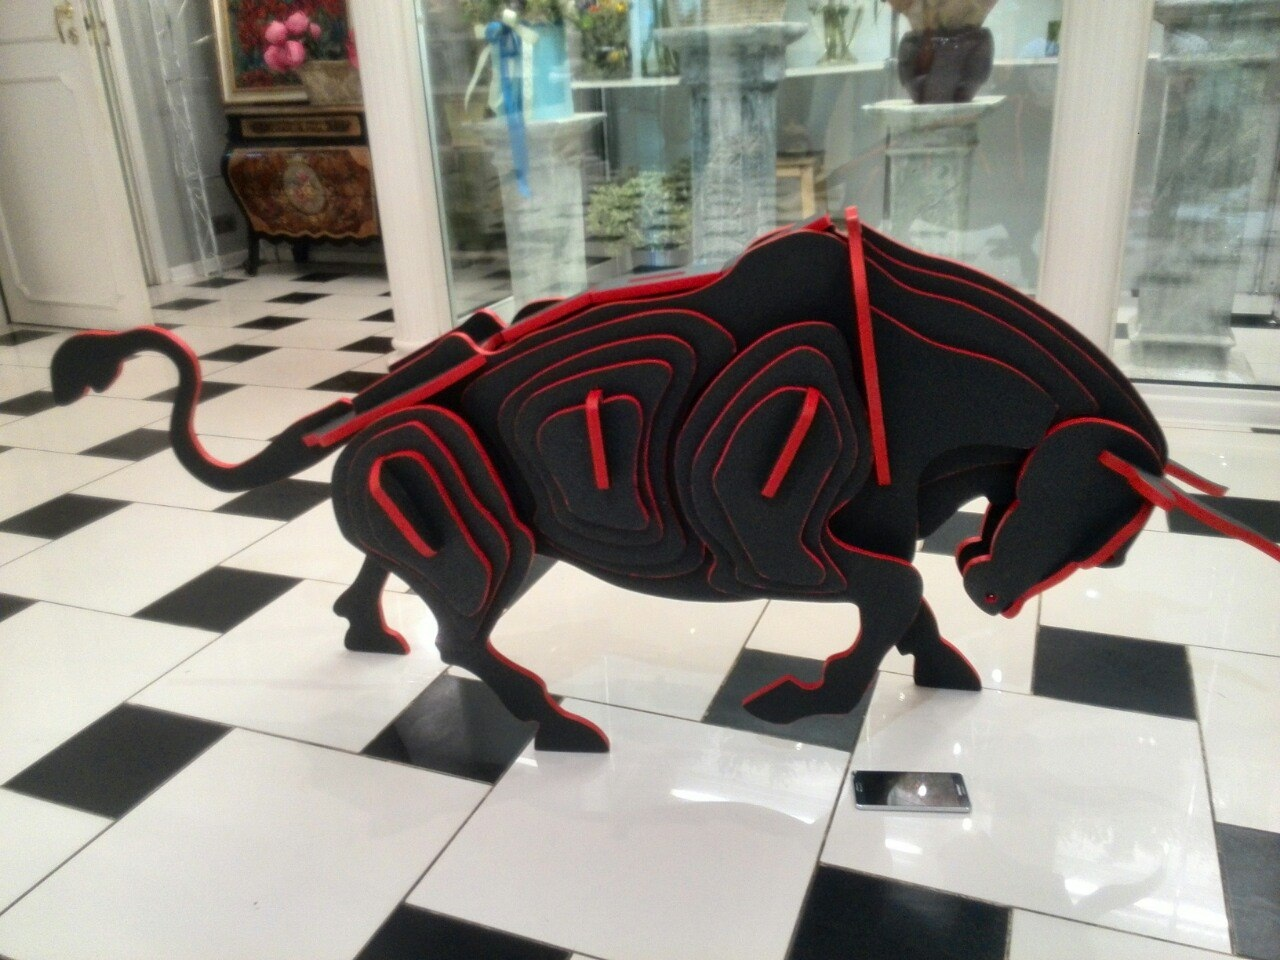 Laser Cut Bull 3D Puzzle Wooden Model DXF File